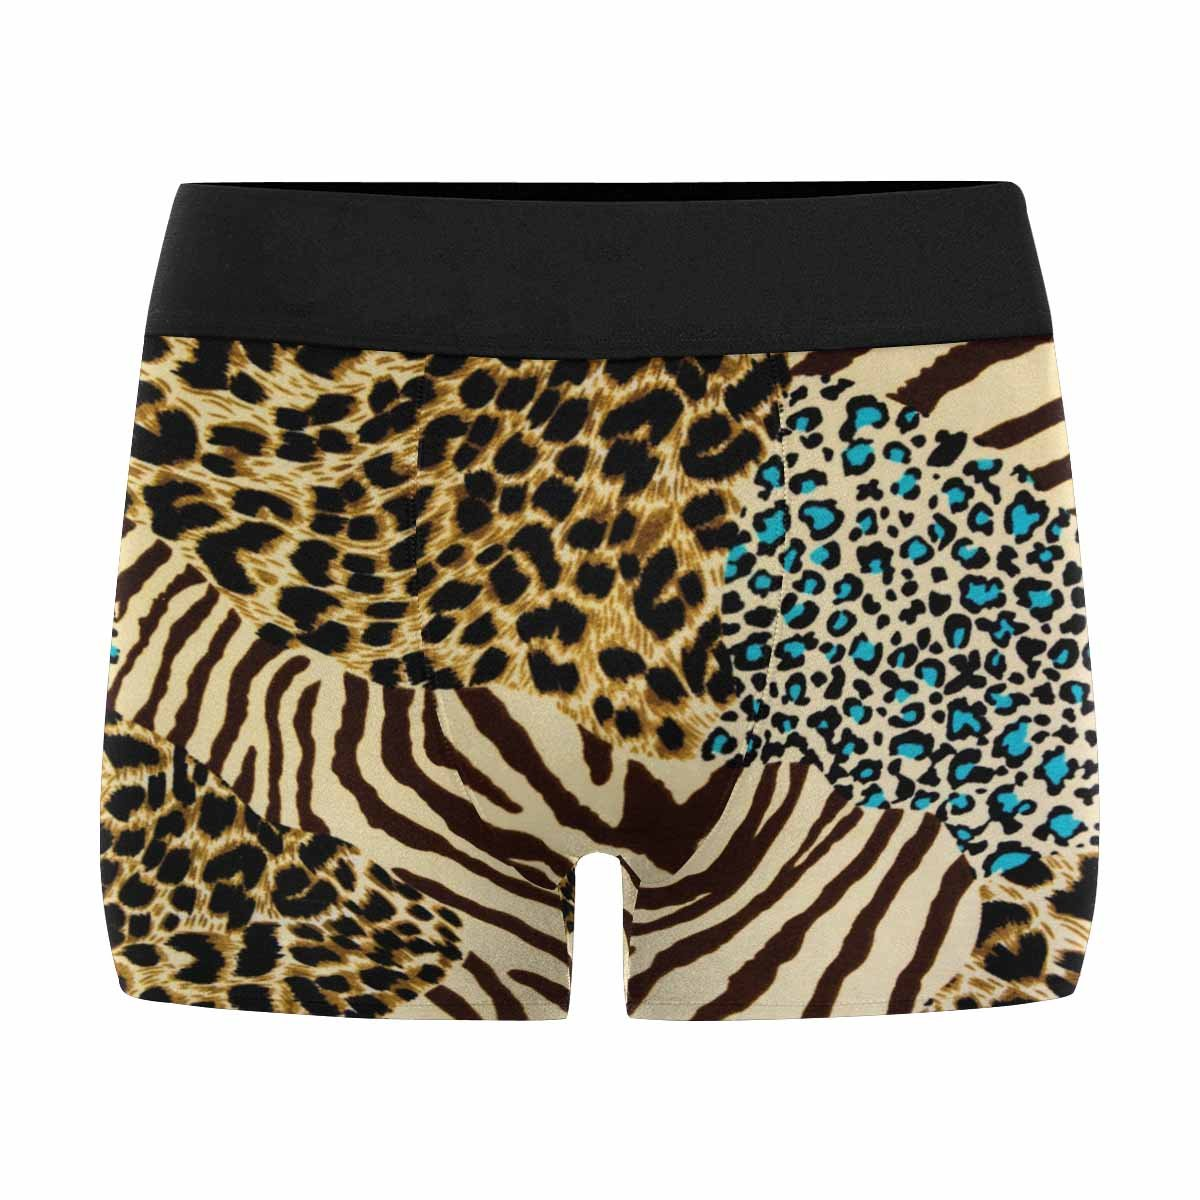 INTERESTPRINT Mens All-Over Print Boxer Briefs Tiger Prints and Zebra XS-3XL